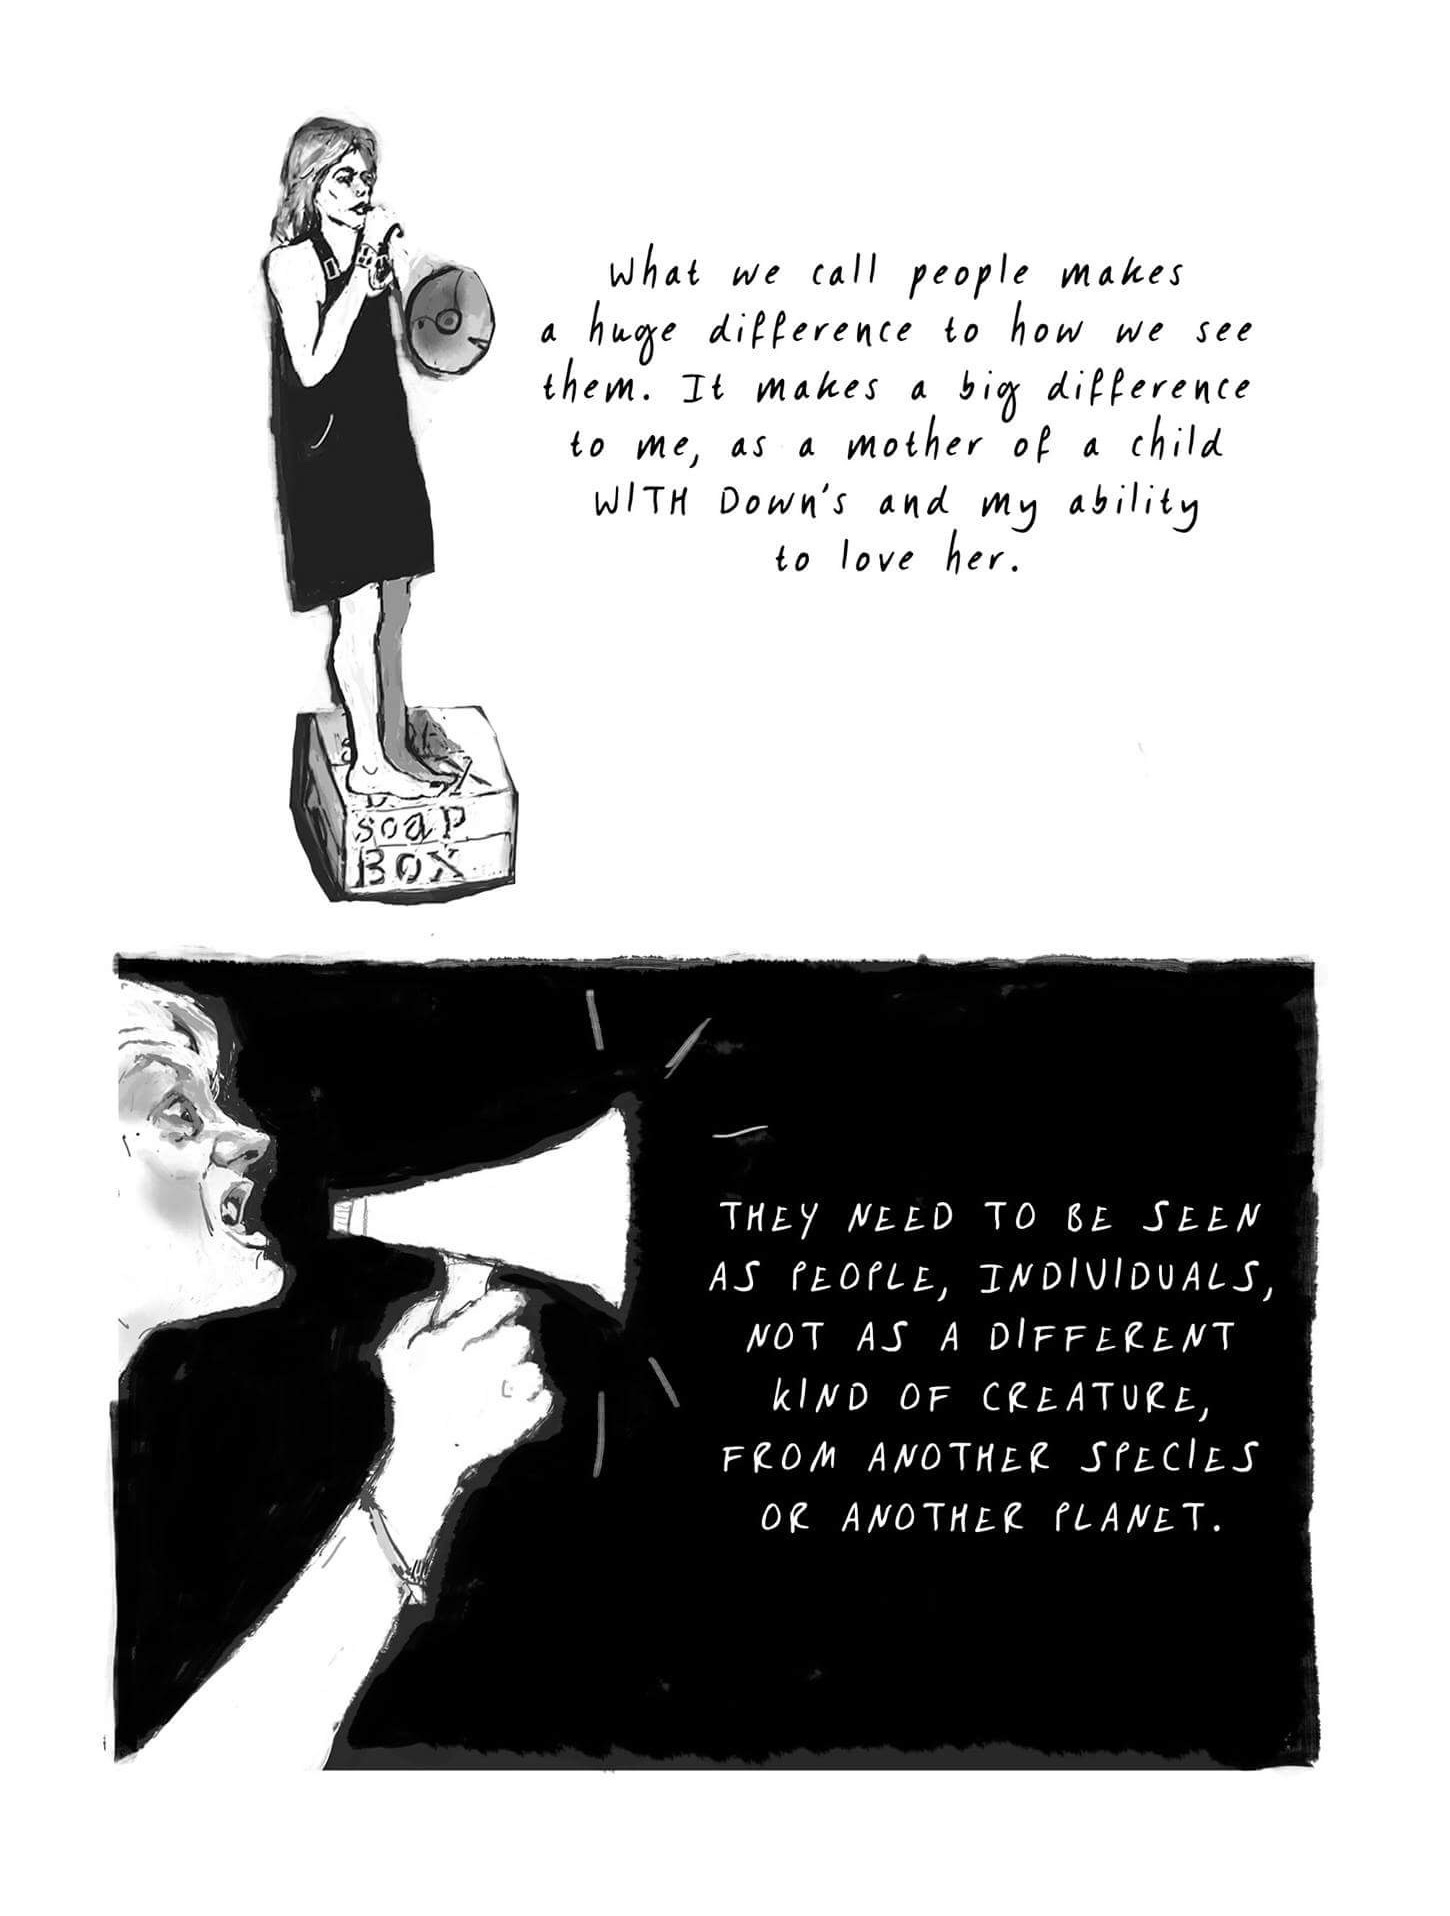 Cartoon by Henny Beaumont from Hole in the Heart - Bringing up Beth